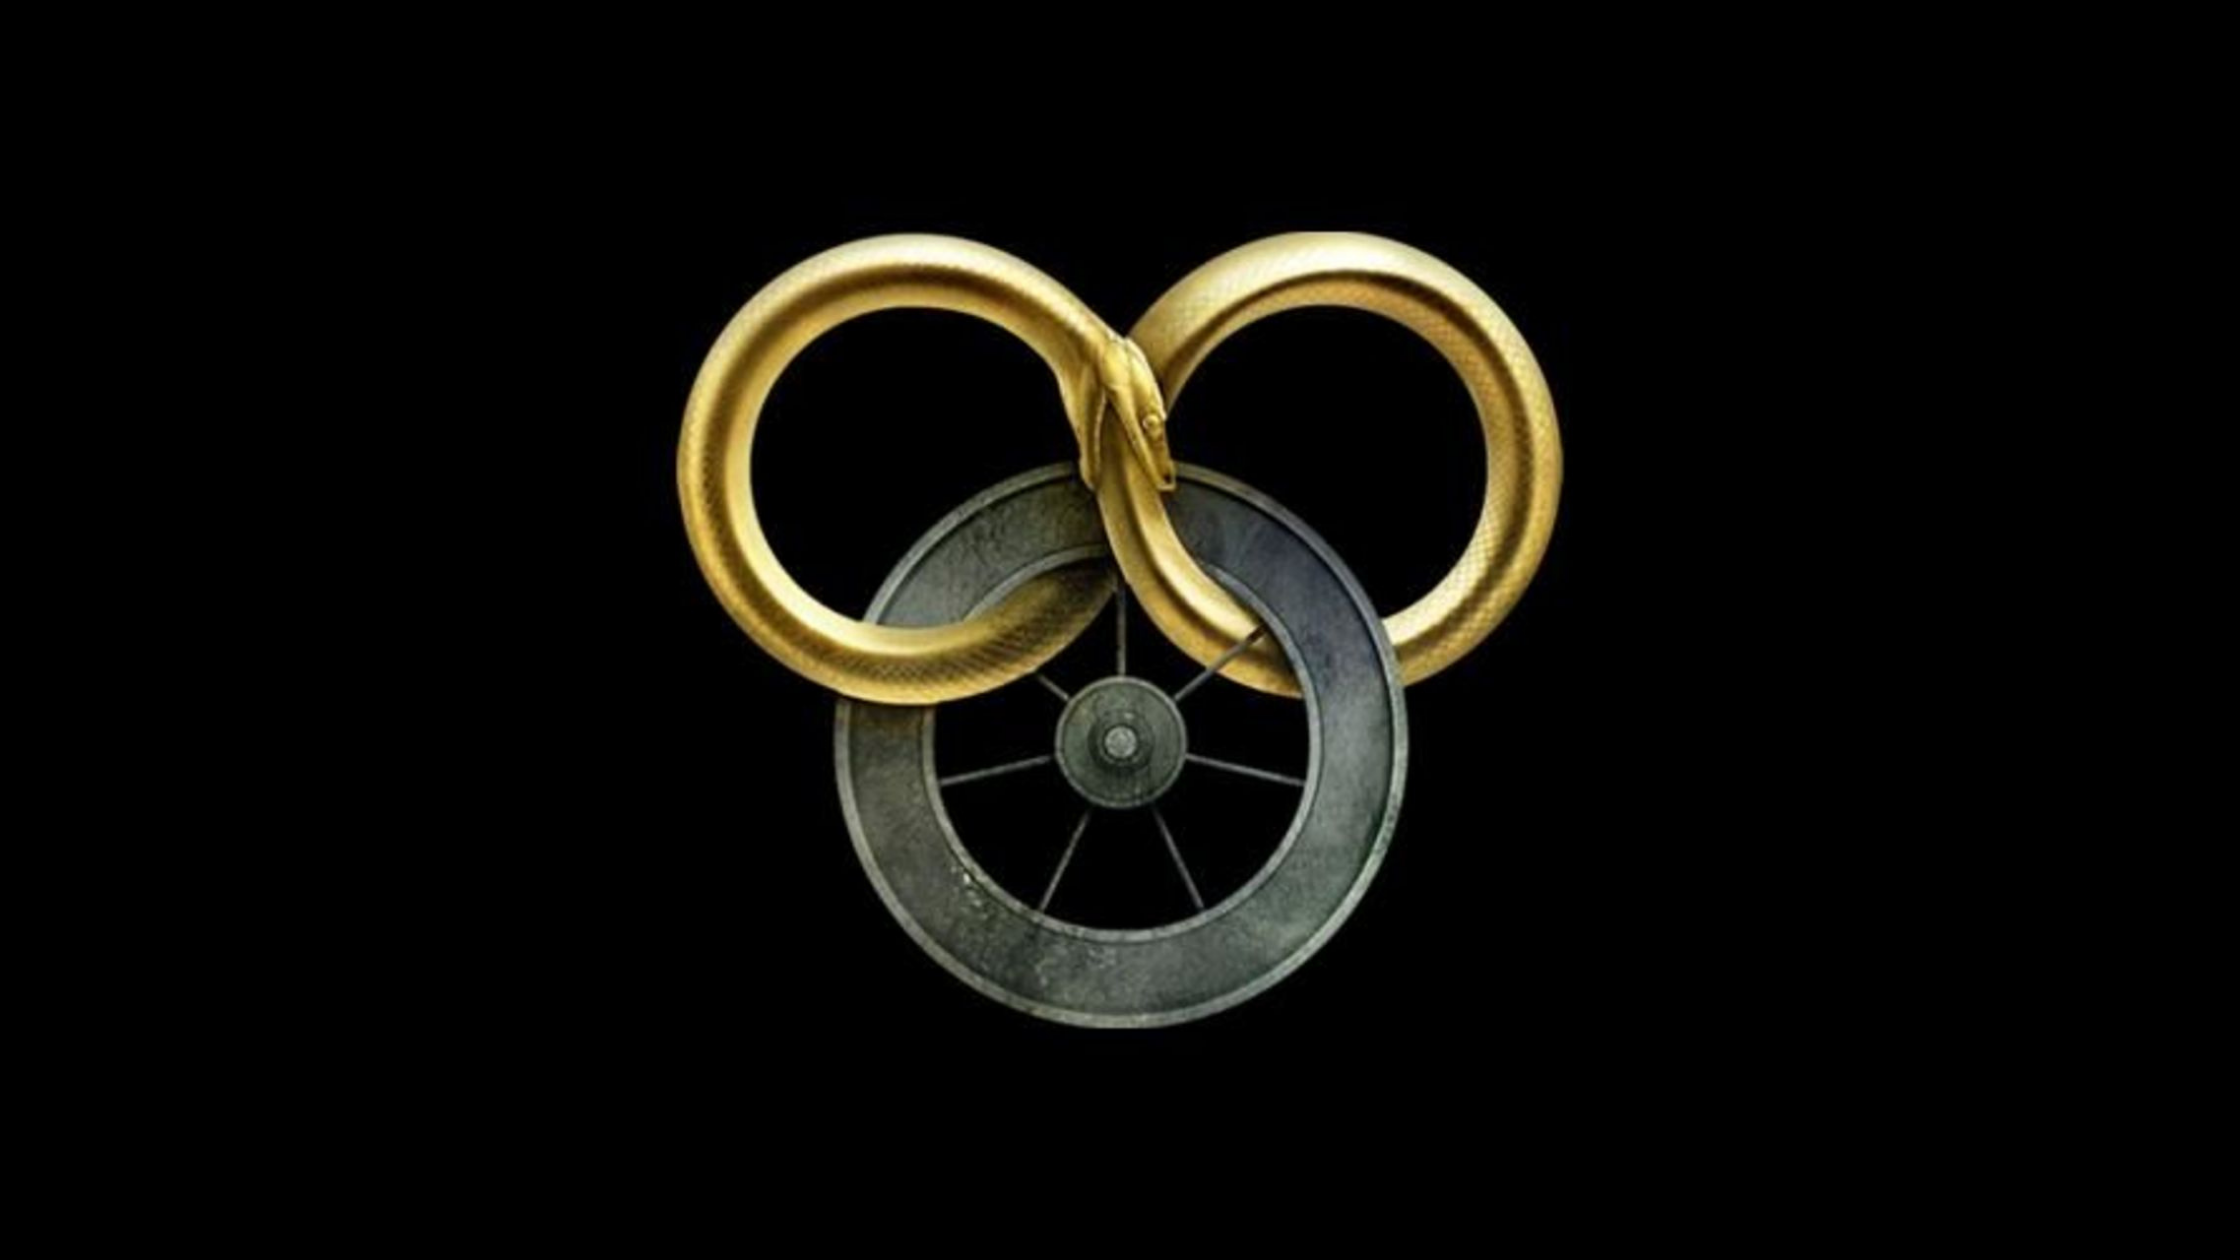 Against a black backdrop, there's a seven-spoked wheel that looks like it's made of iron. Intertwined is a gold-colored snake eating its own tail, twisted into an infinity symbol.